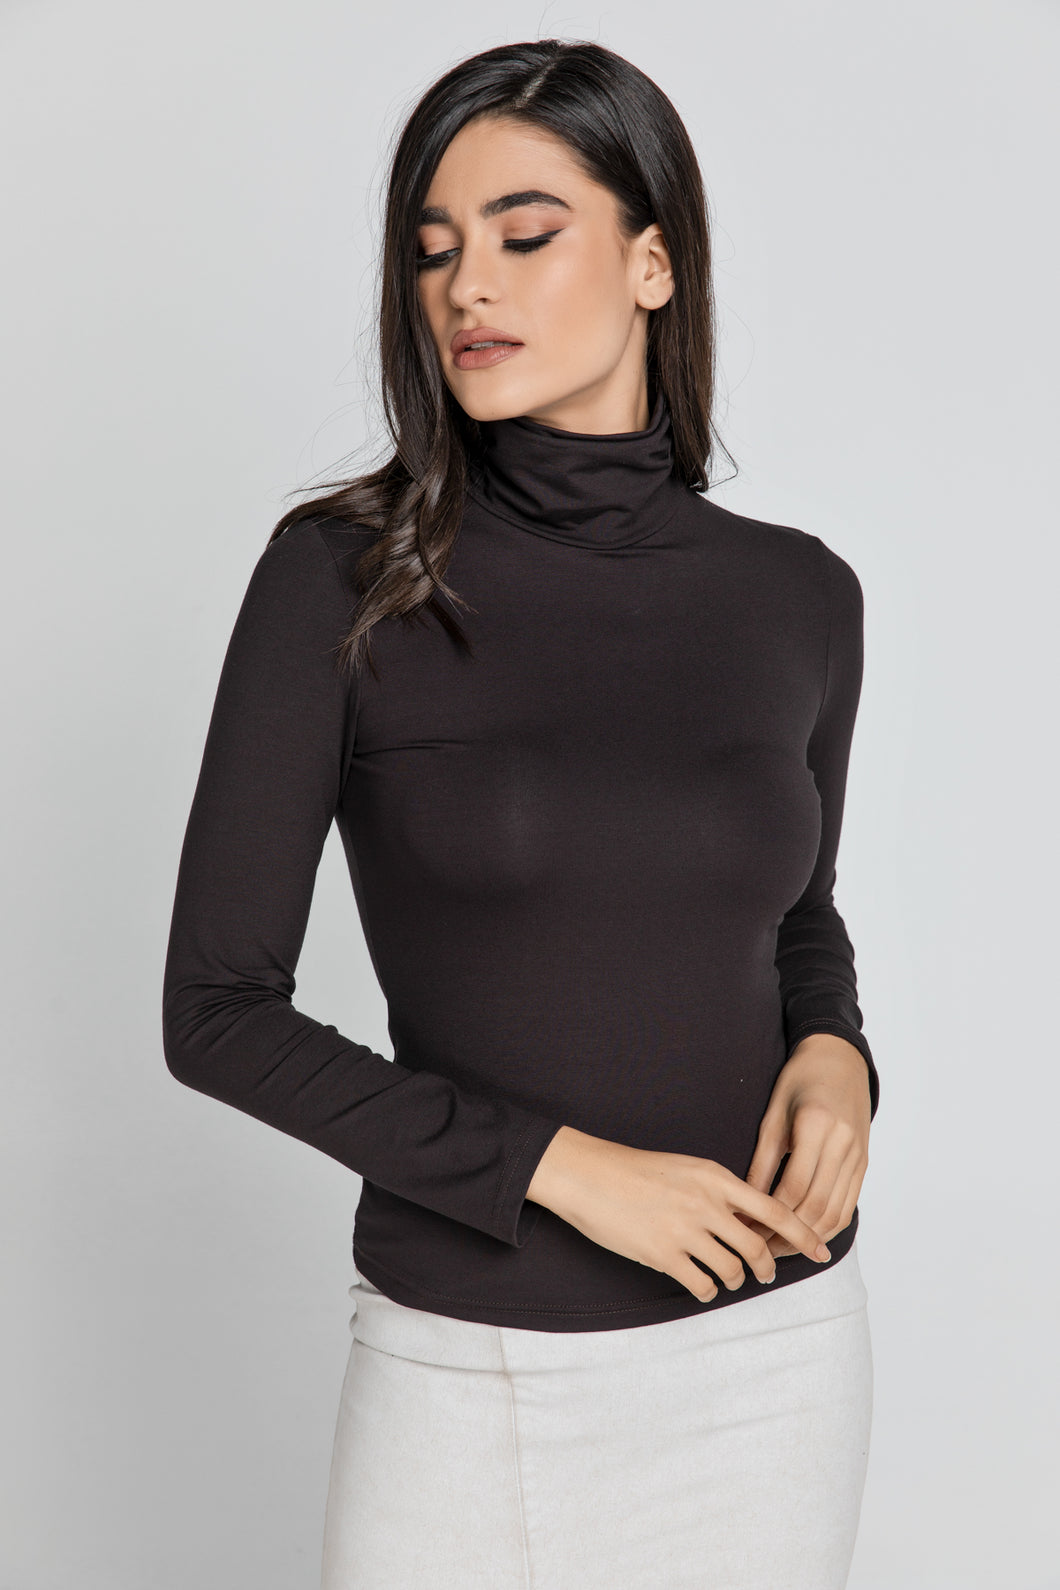 Dark Brown Turtle Neck Top By Conquista